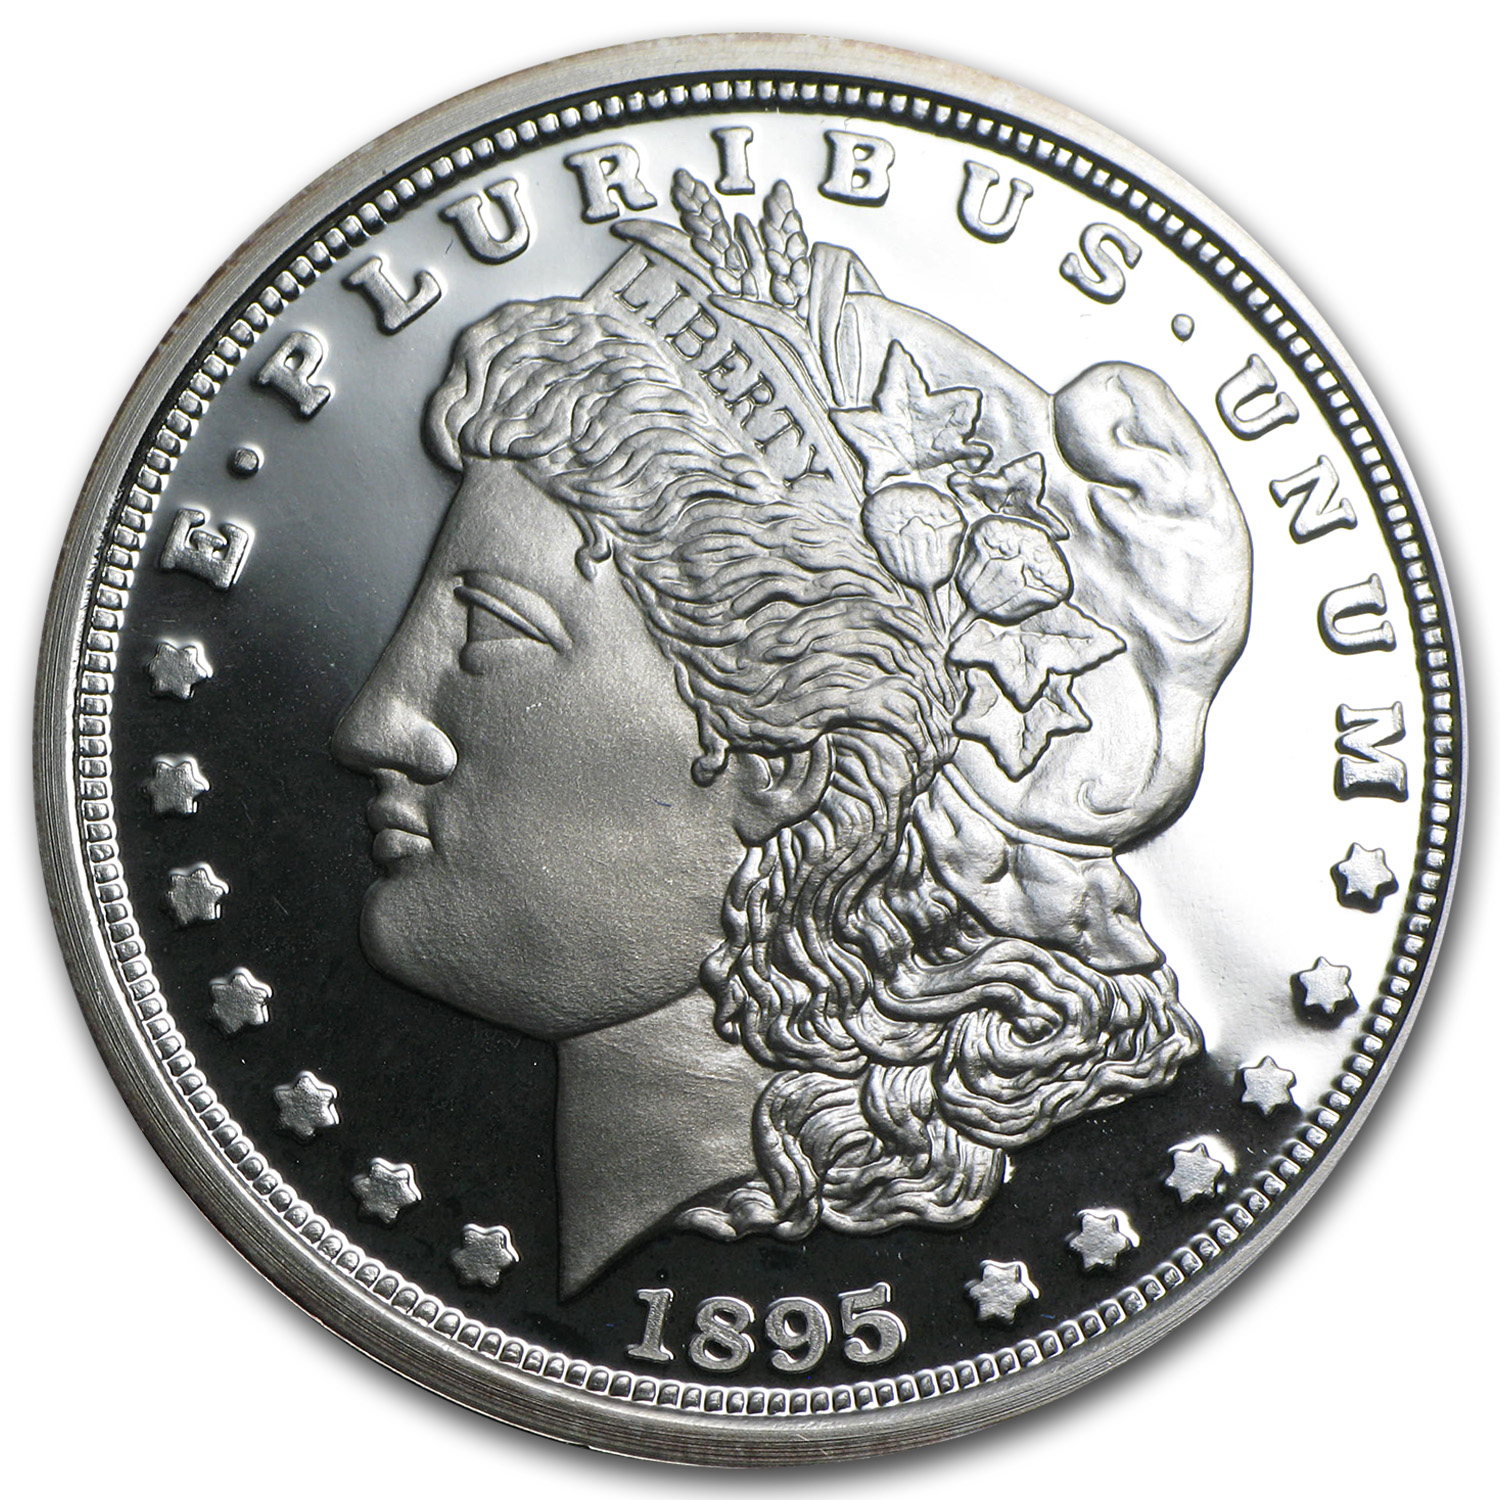 1 oz Silver Rounds - 1895 Morgan Dollar Replica (Proof)